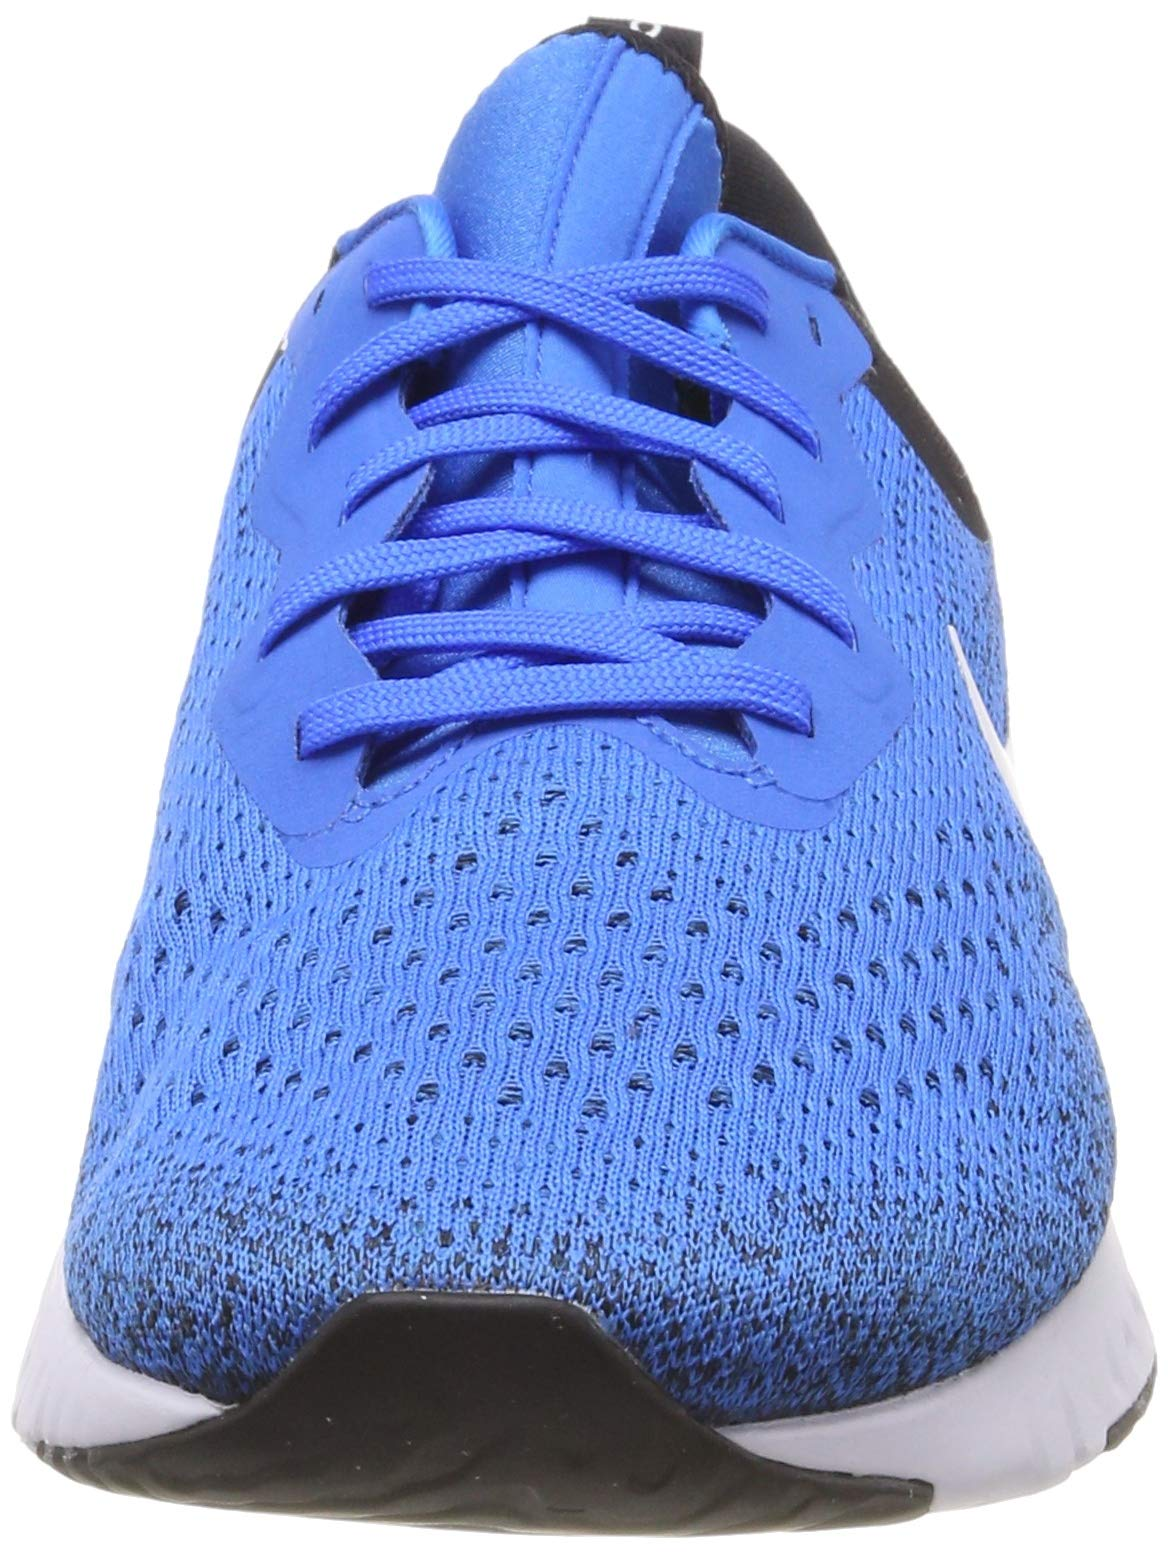 Nike Odyssey React Men's Running Shoe Green Abyss/Volt-Blue Force-White 7.5 by Nike (Image #4)